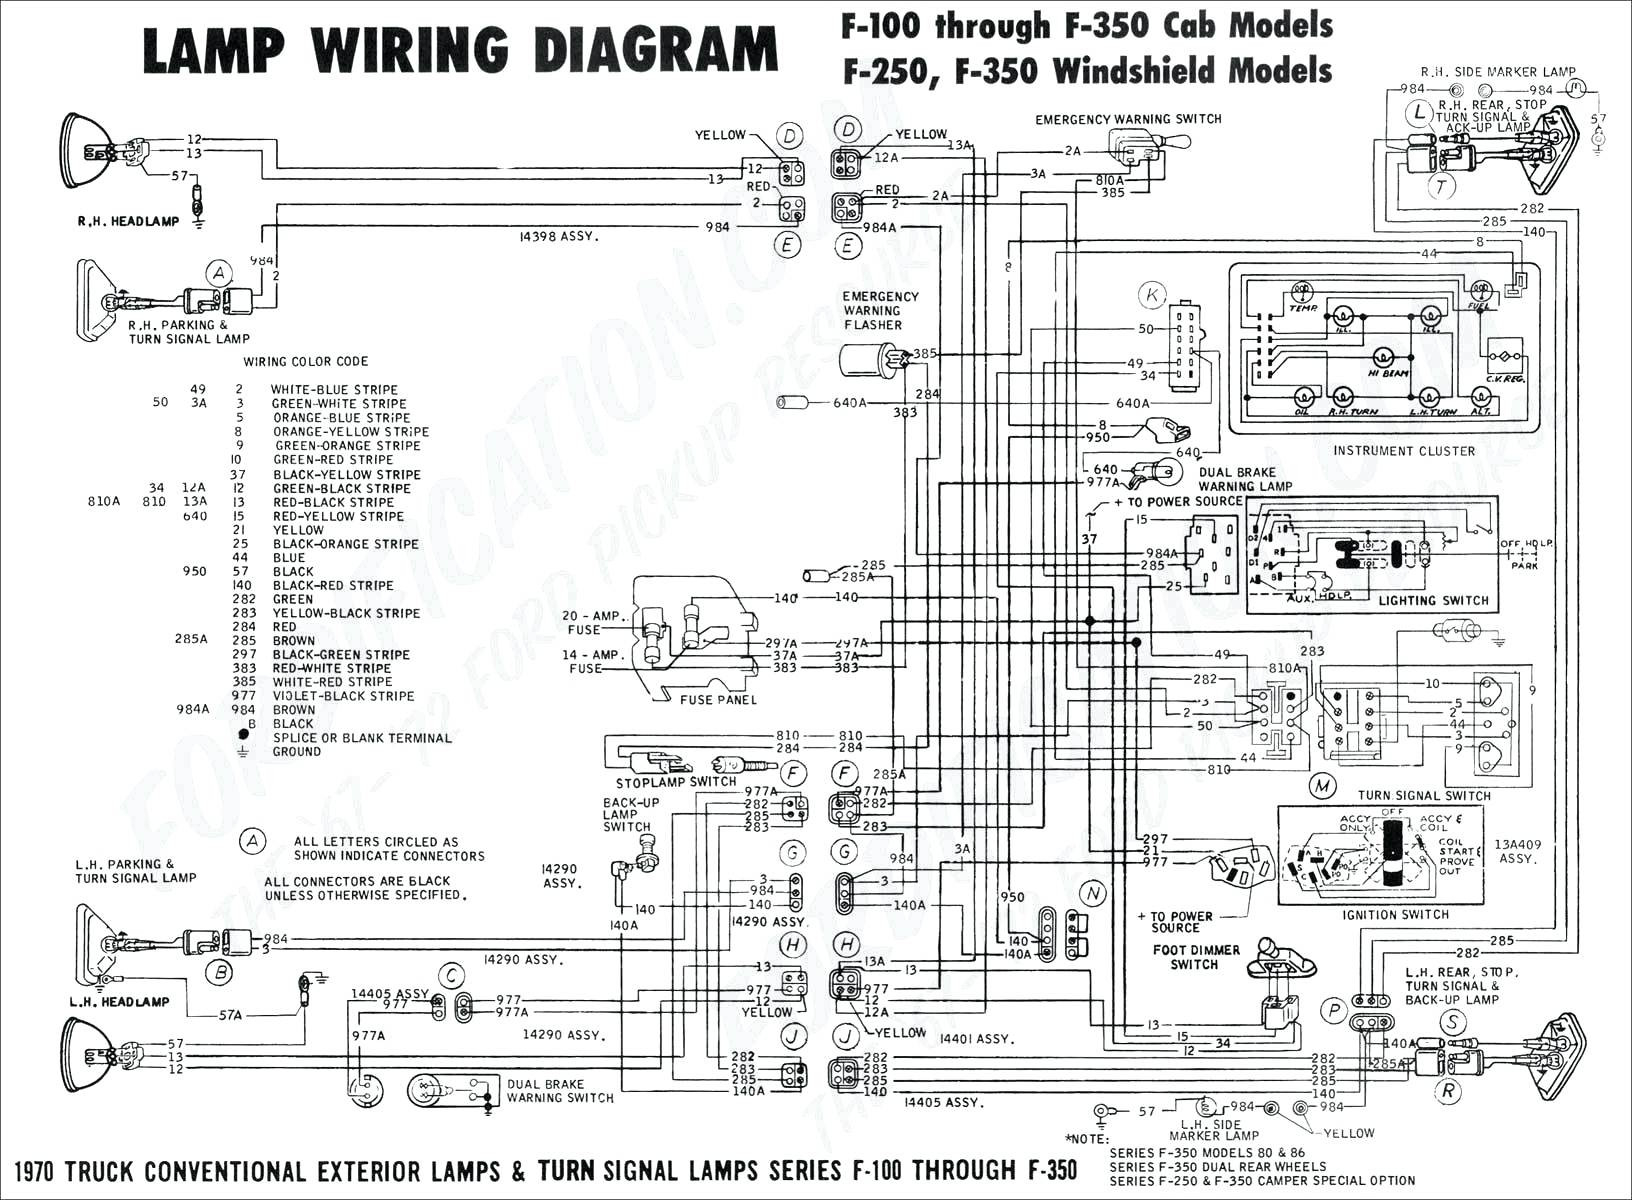 2017 ford f550 pto wiring diagram Collection-2017 Ford F550 Pto Wiring Diagram Recent 2003 F250 Wiring Diagram Wire Center • – Wiring Diagram Collection 10-d